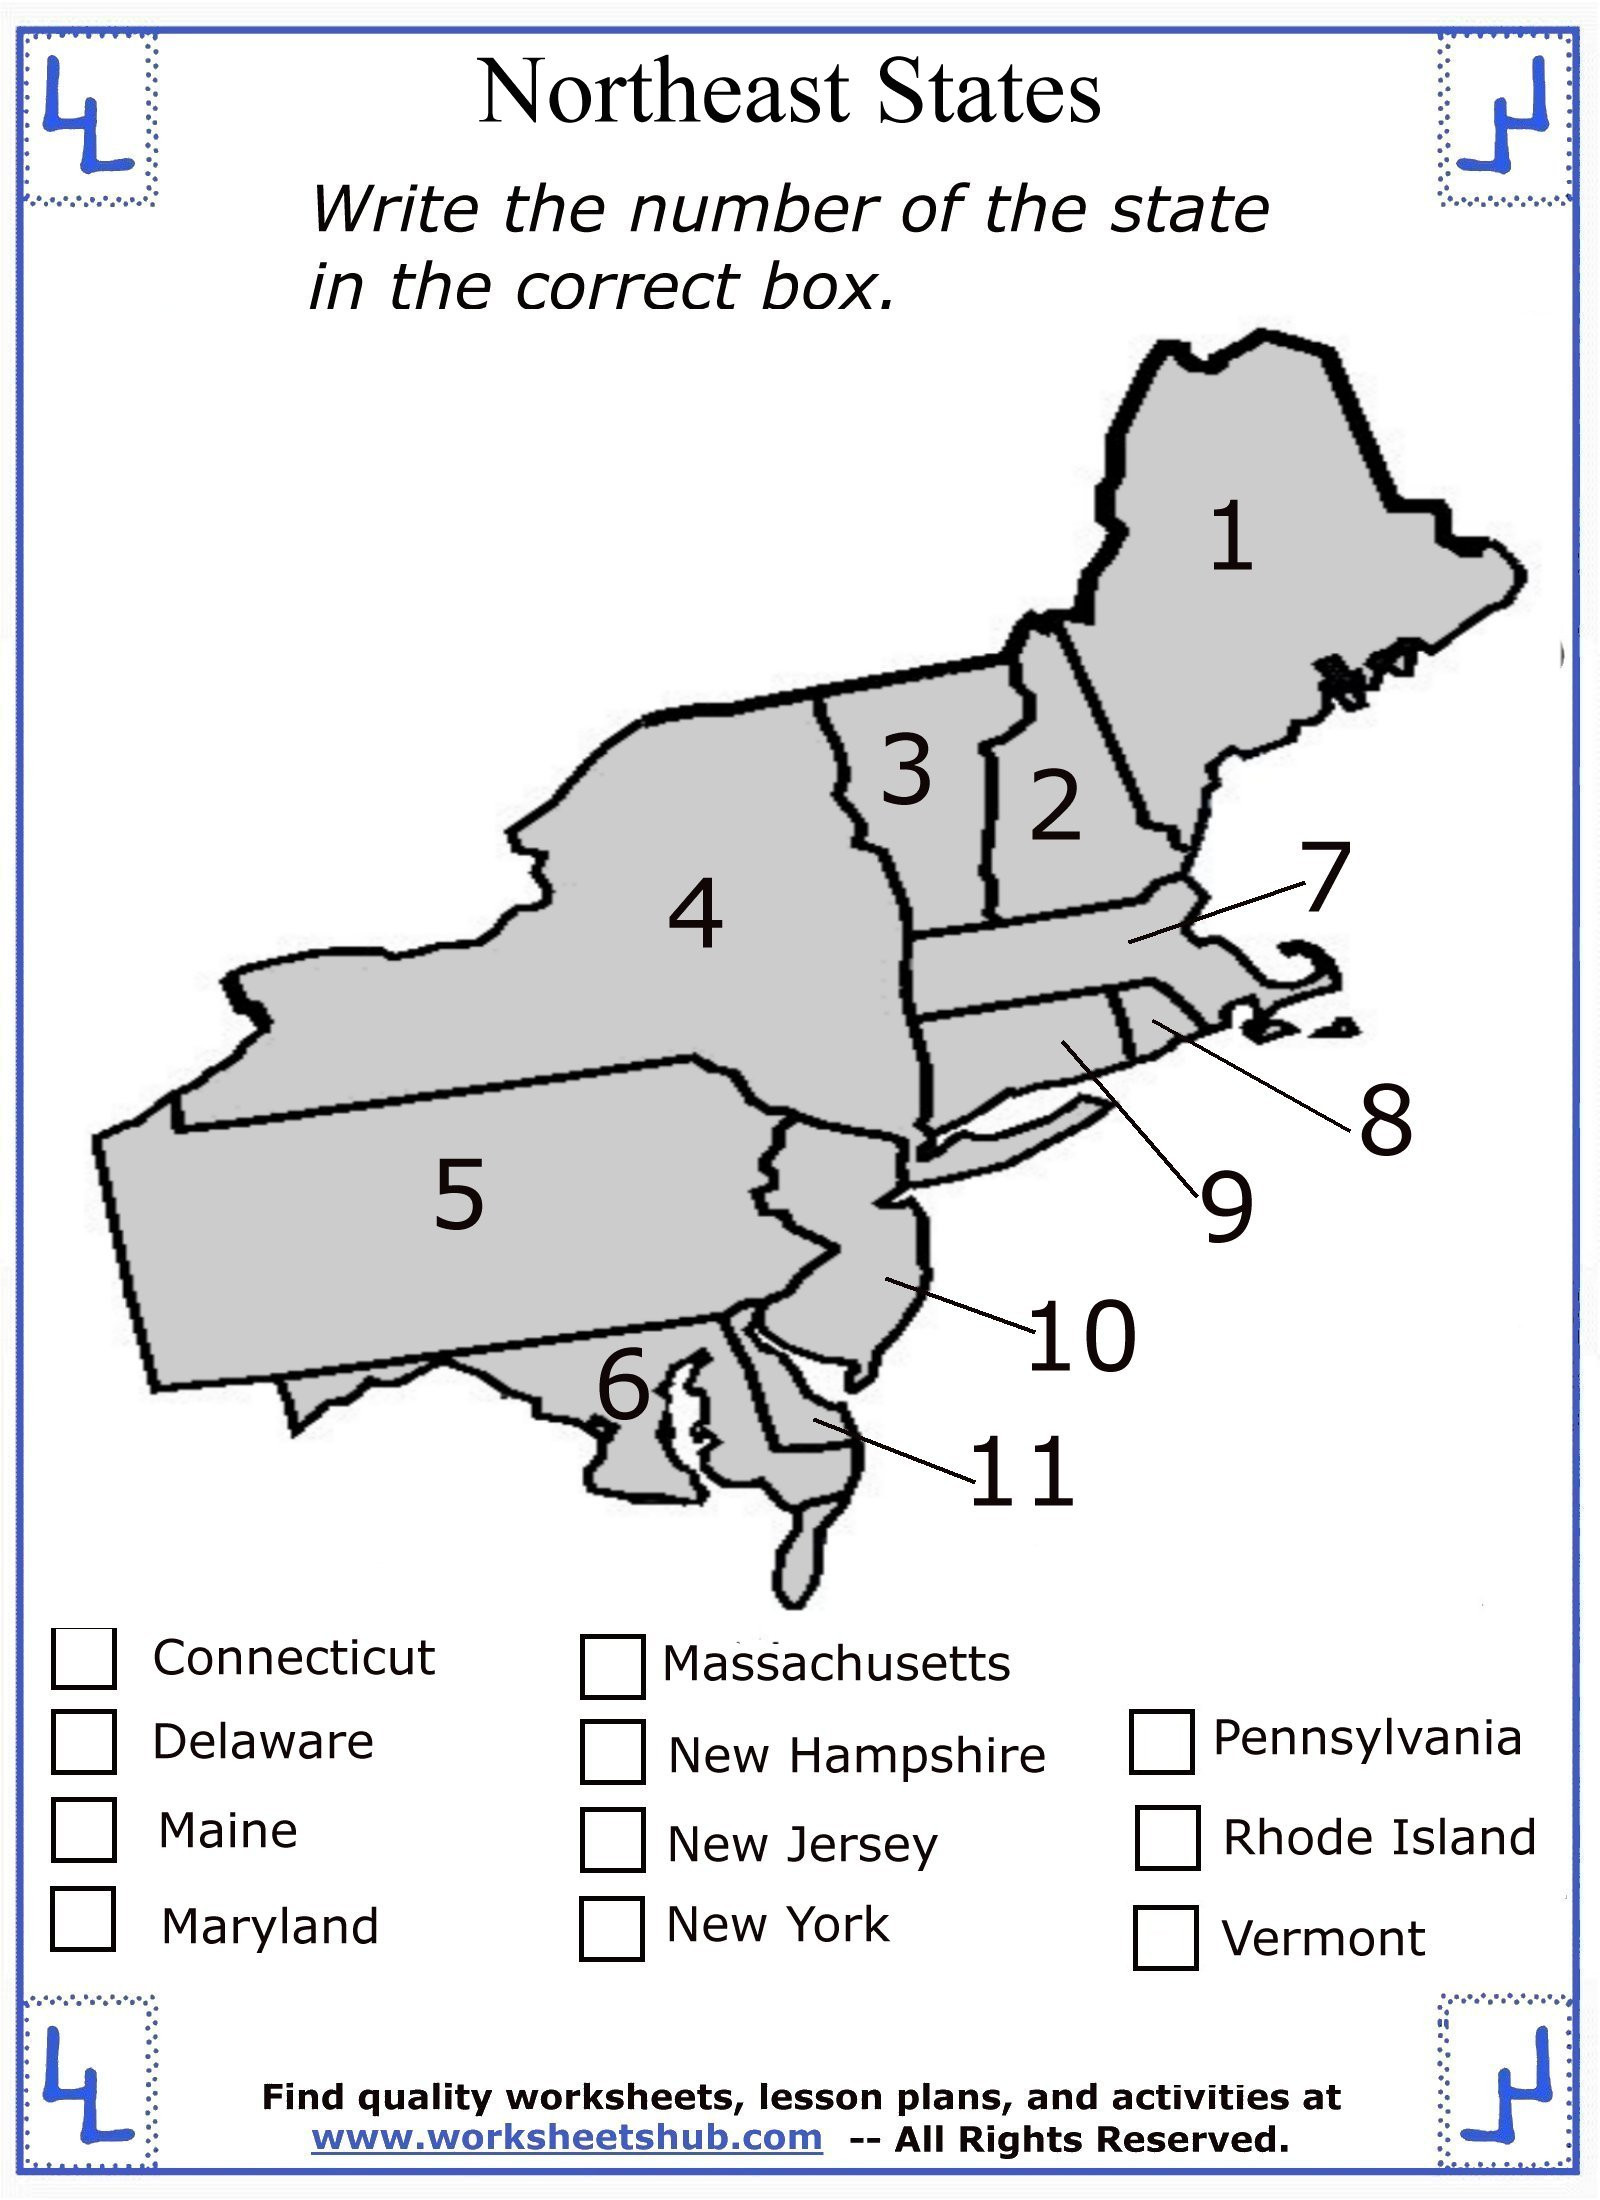 Printable States and Capitals Quiz Fourth Grade social Stu S northeast Region States and